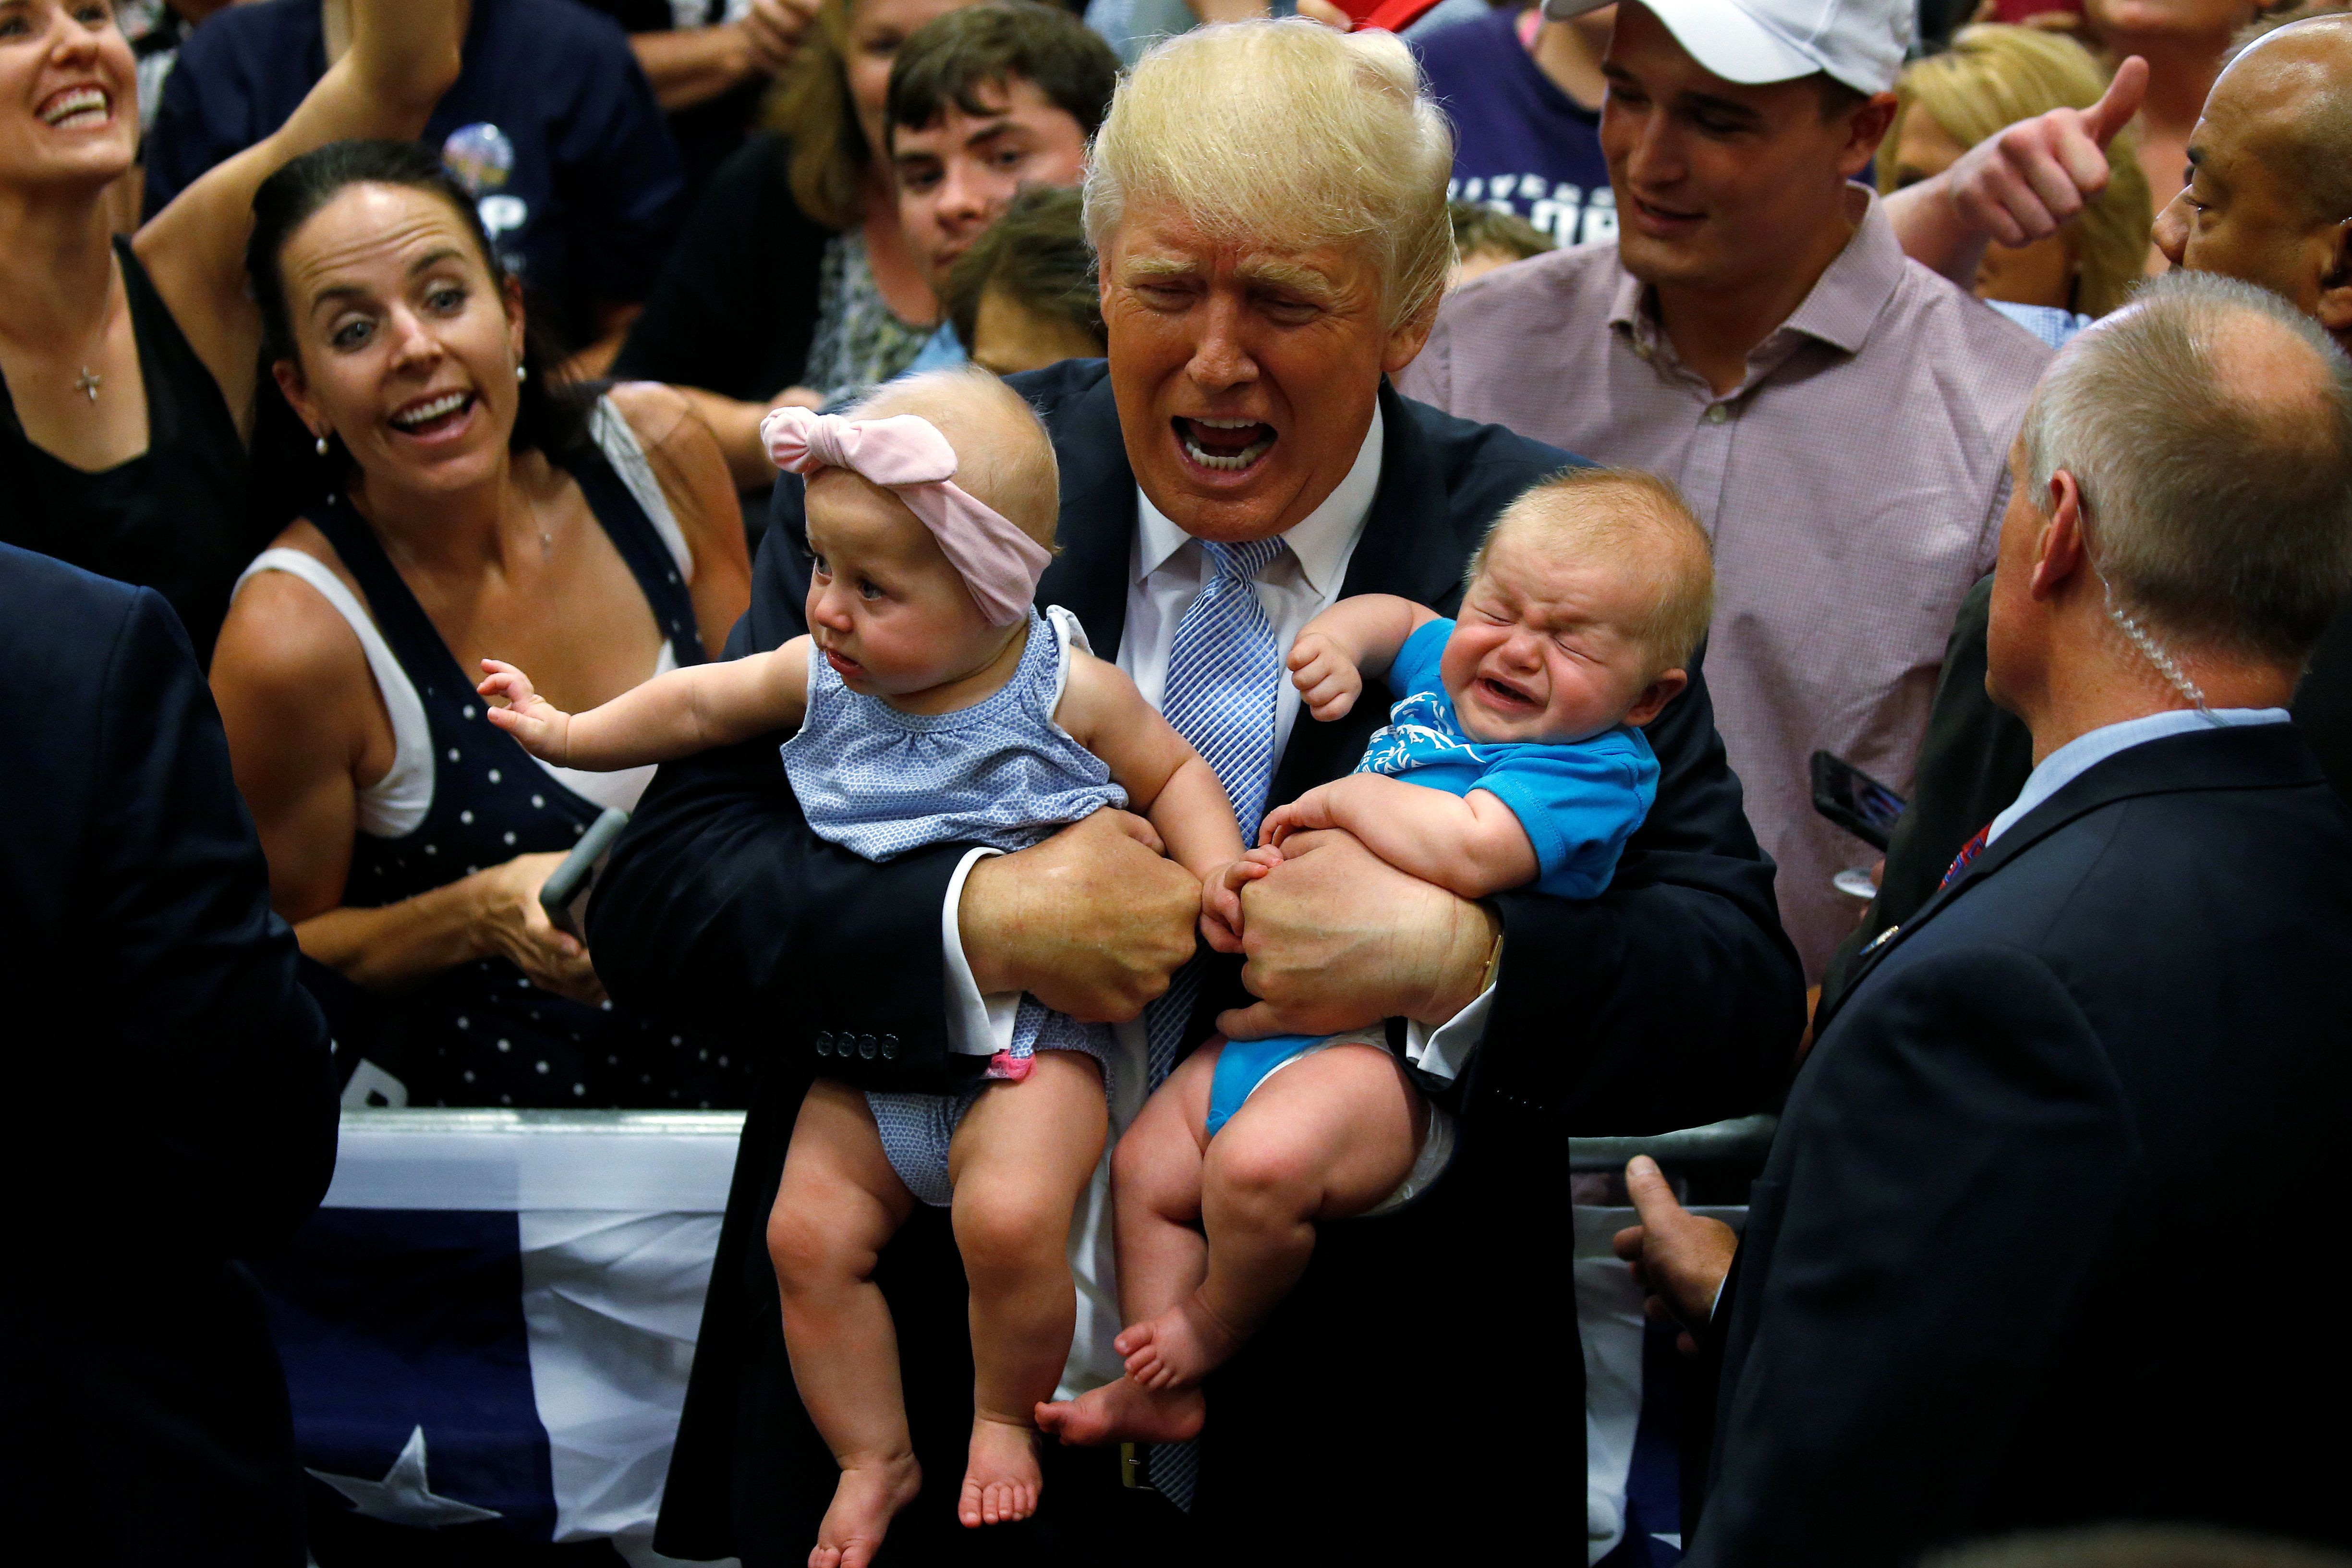 The name Donald remains the 488th most popular name for boys, the same position it occupied in 2016.